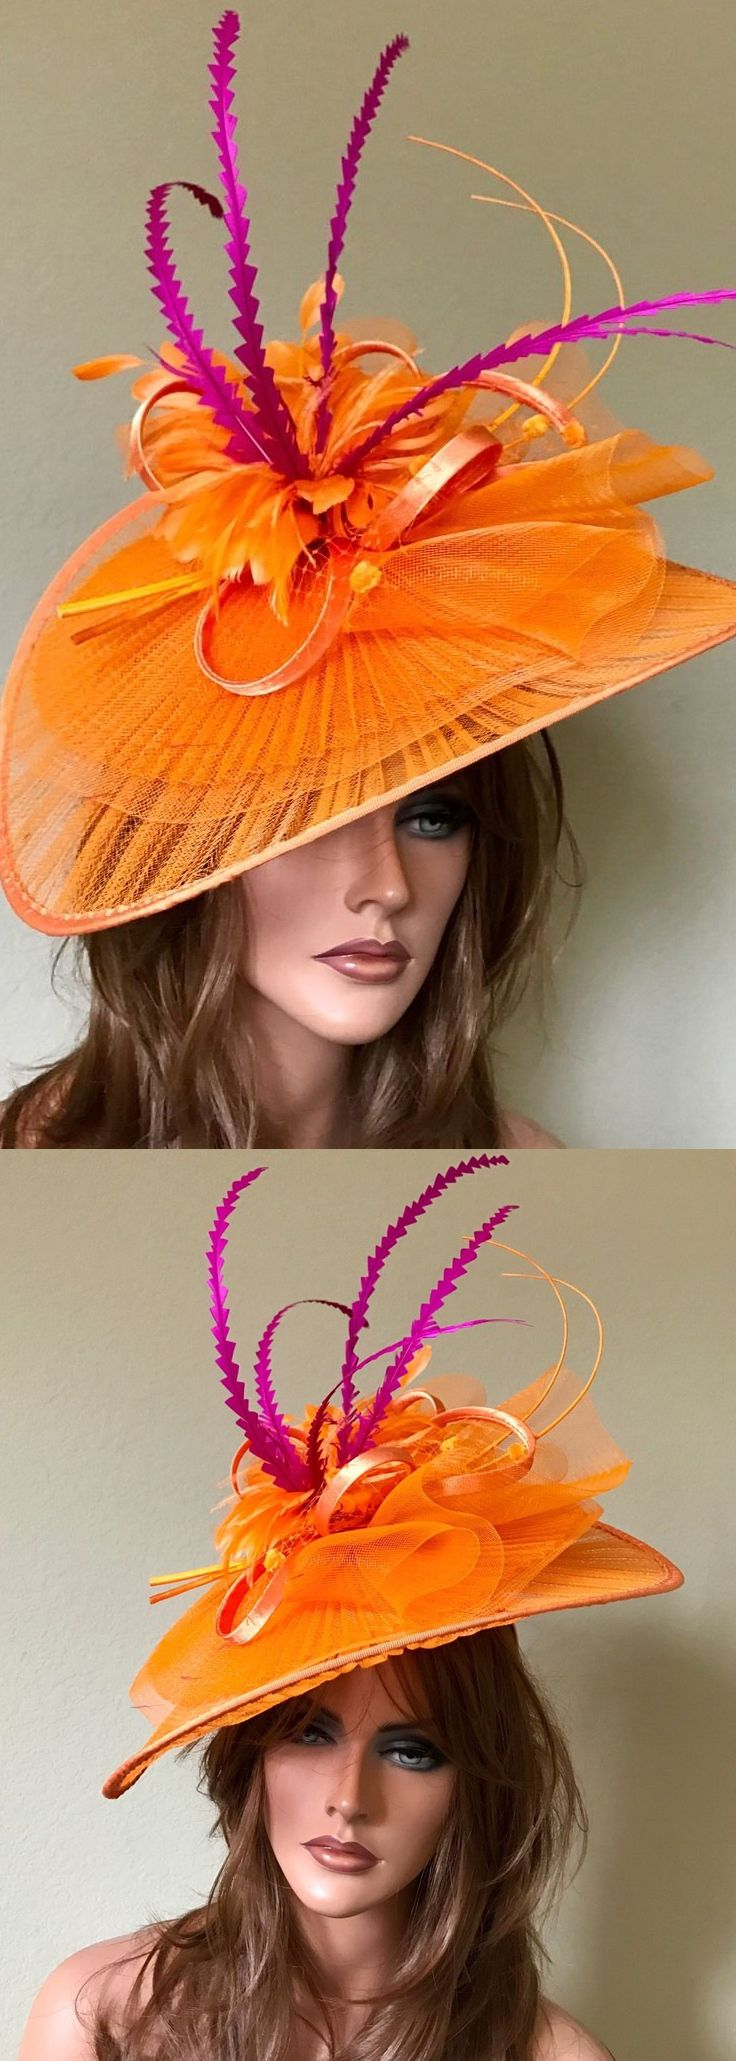 Big Fuchsia + Orange Kentucky Derby Mother of the Bride Hat. Kentucky Derby Royal Ascot Racing Style. Showstopping Hats for the Races Outfits. Spring summer mother of the bride hat. Ascot Kentucky derby outfit ideas. #royalascot #kentuckyderby #derbyhats #racingfashion #fashionsonthefield #hatsfortheraces #millinery #ascothats #dubaiworldcup #fashion #fashionista #derbydayoutfits #kentuckyderbyparty #springwedding #weddingideas #weddinginspiration #affiliatelink #motherofthebride